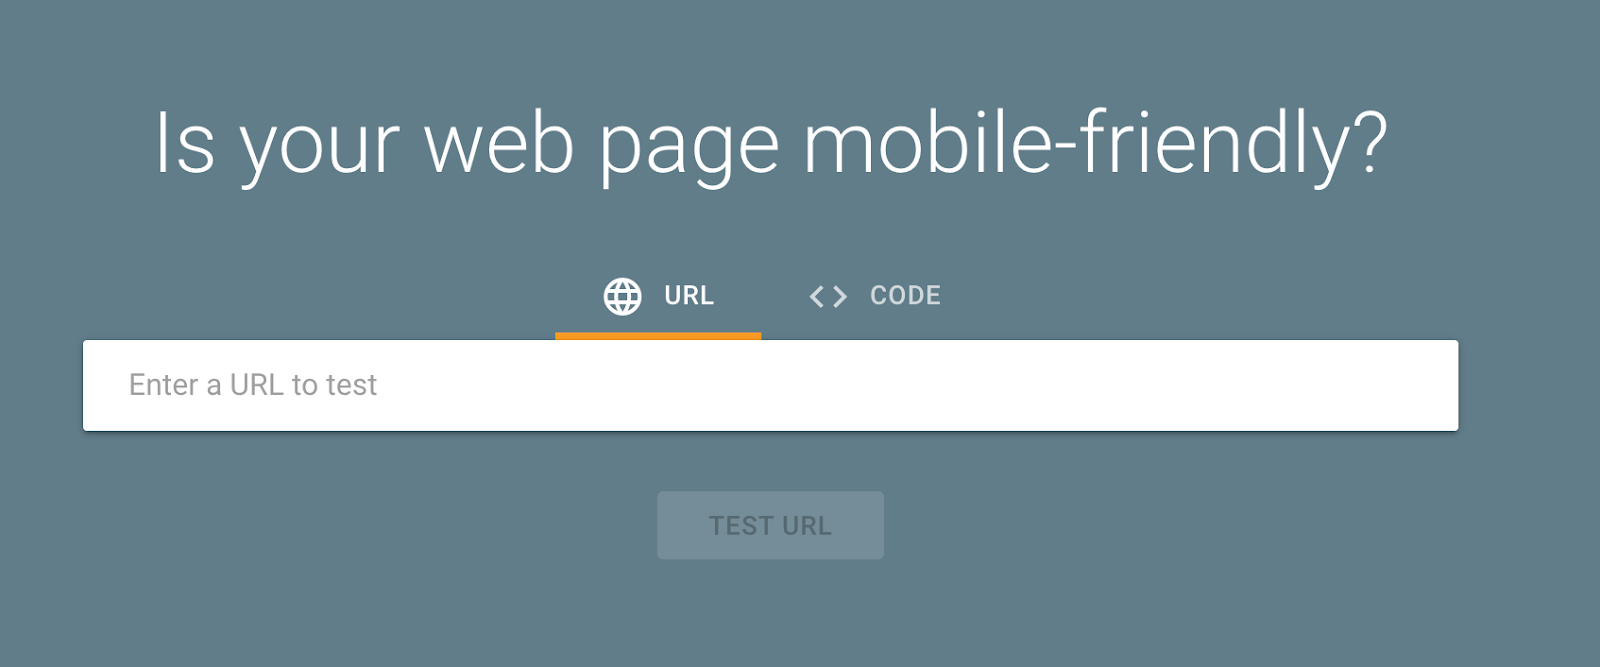 Google Mobile-Friendly Test Tool Landing Page Snippet